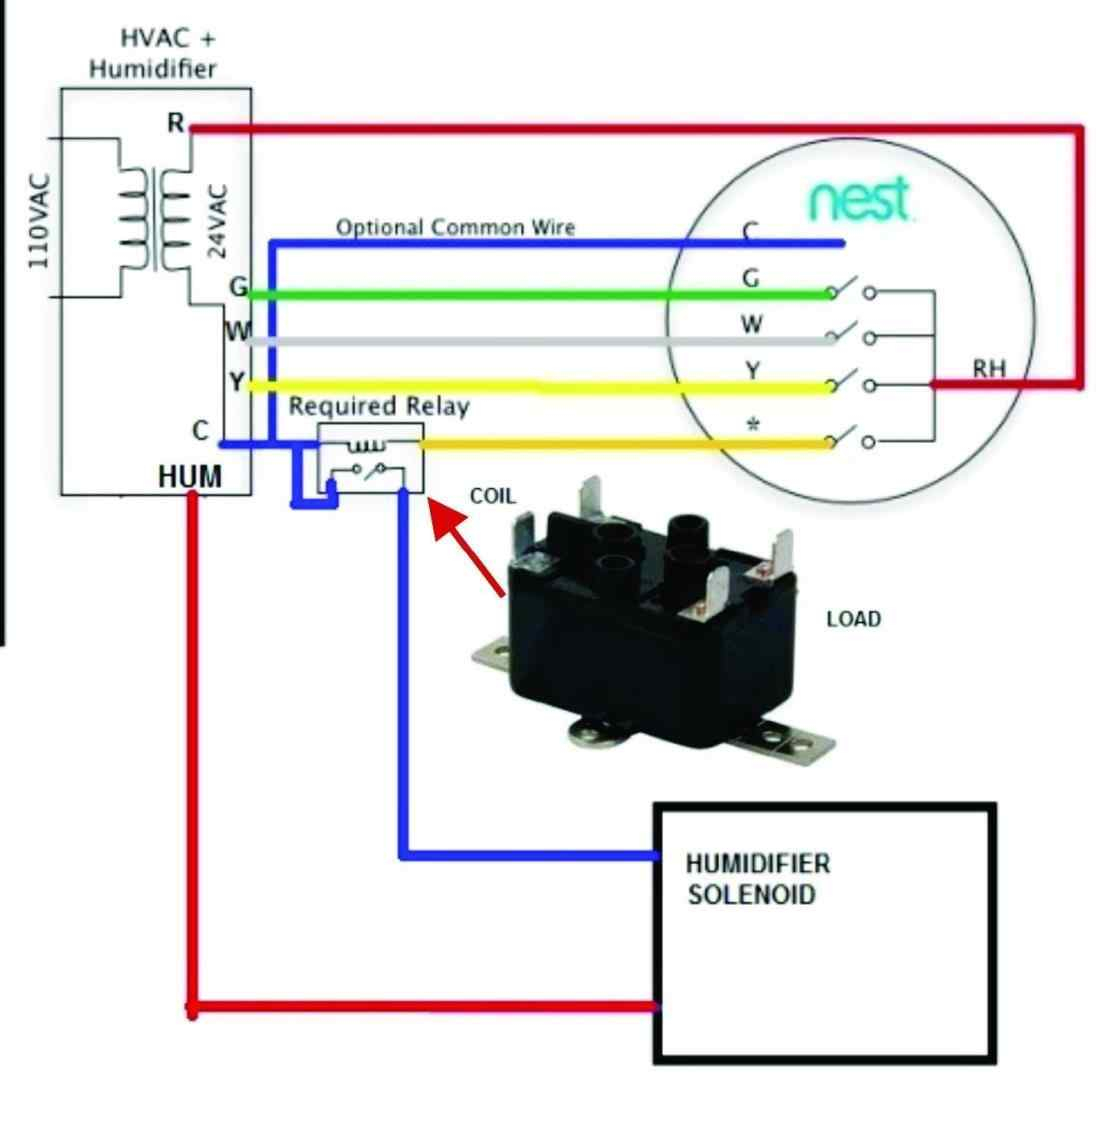 attic fan thermostat wiring diagram plant cell without labels  ideas